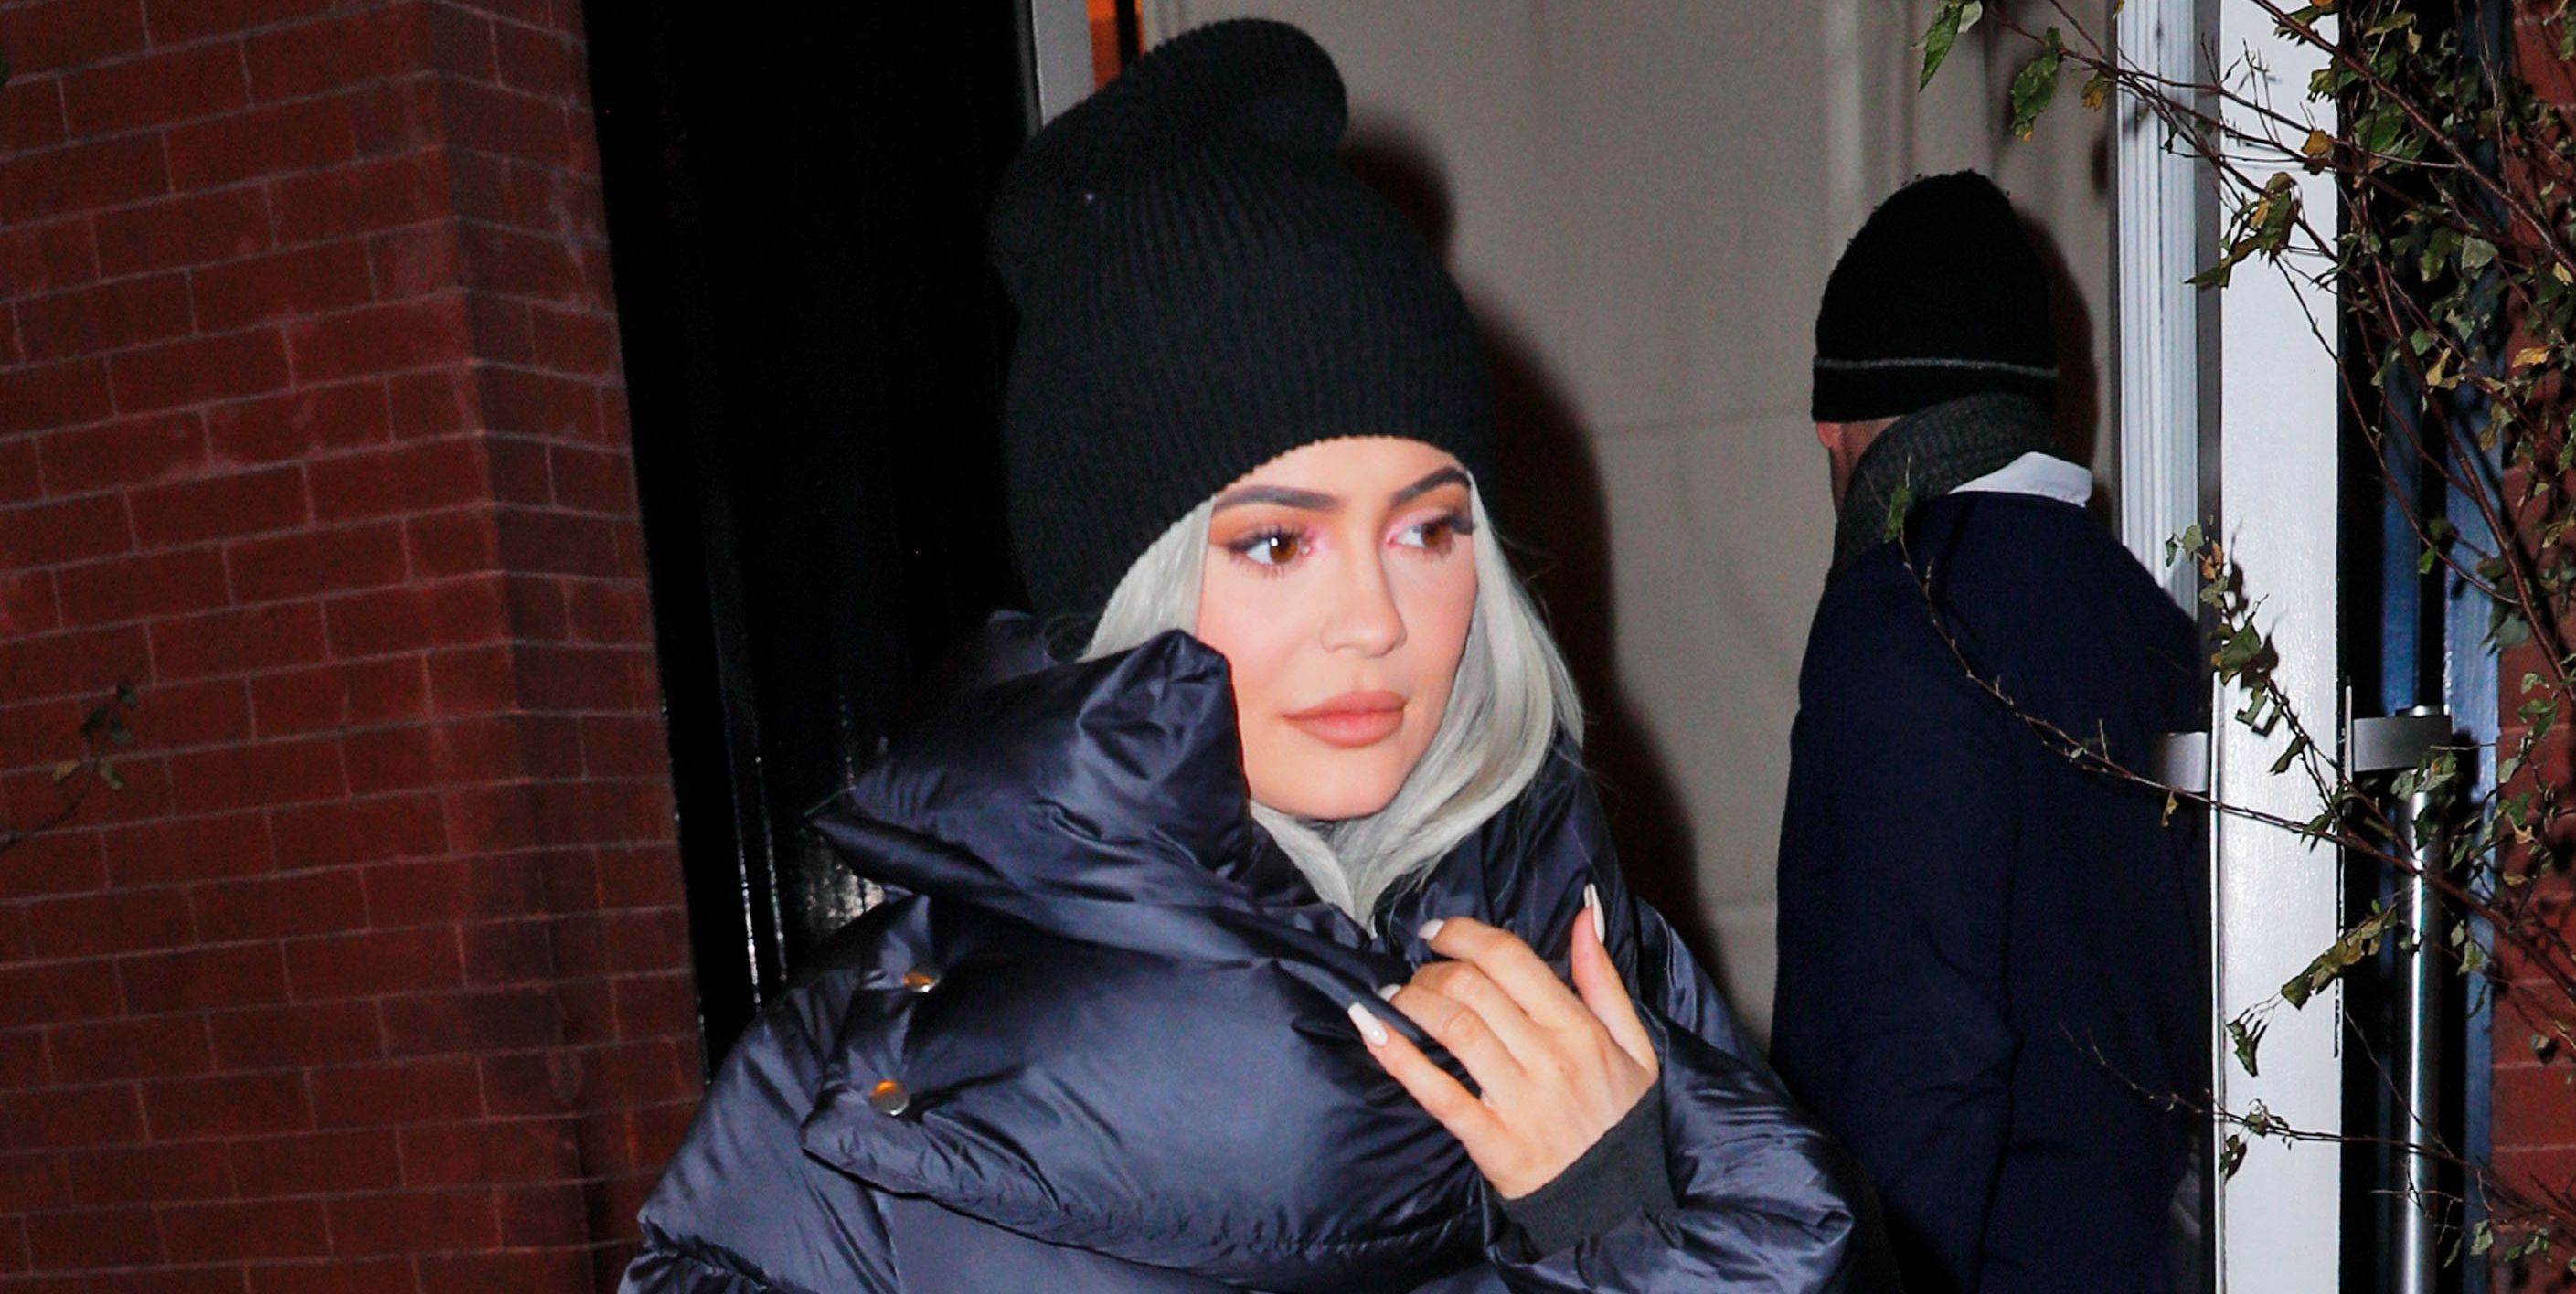 Kylie Jenner and Daughter Stormi Webster Wear Matching Head-to-Toe Outfits For Day in the Snow